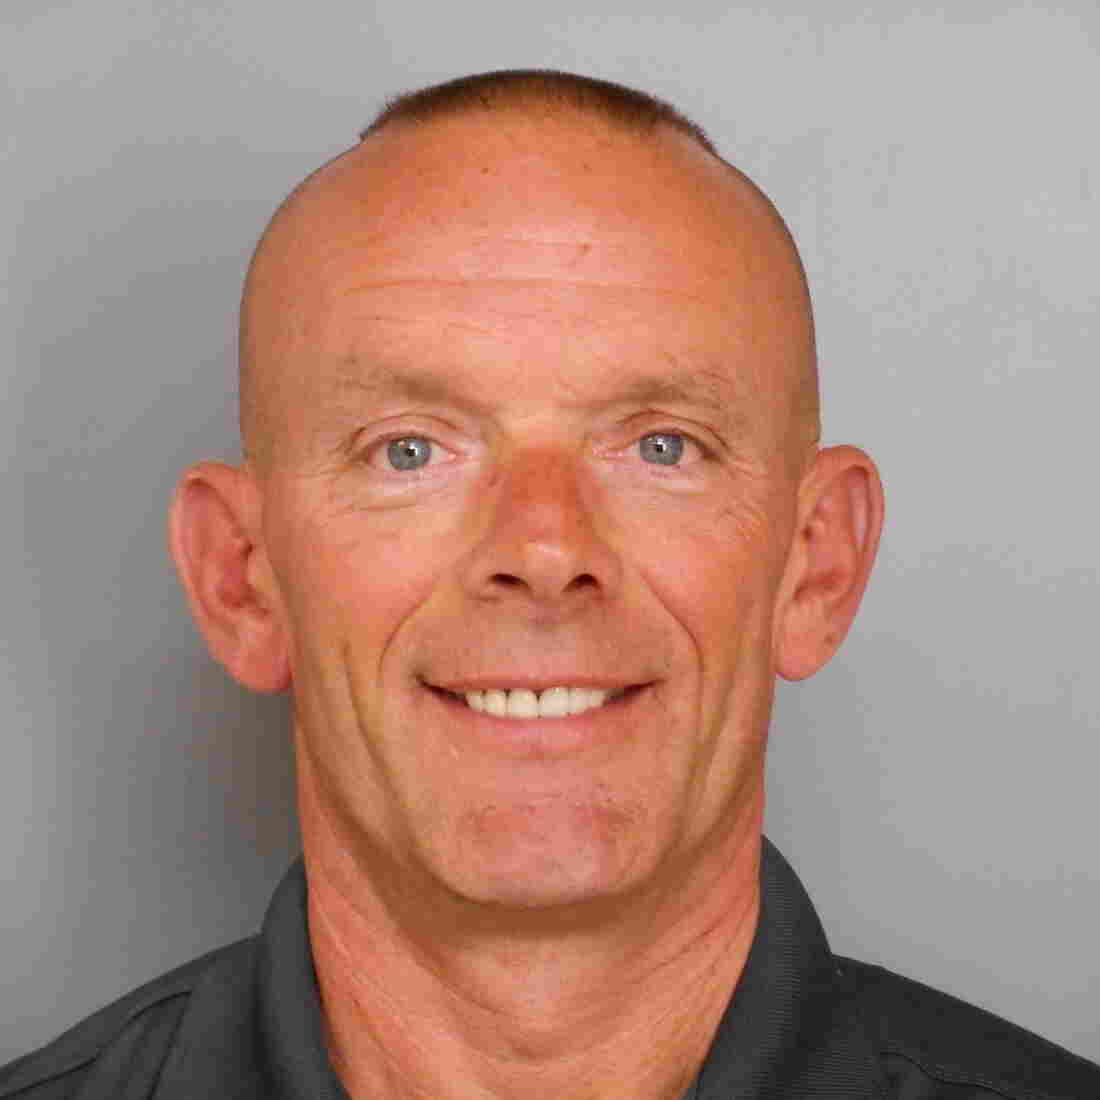 Investigation Finds Illinois Cop At Center Of Manhunt Shot Himself